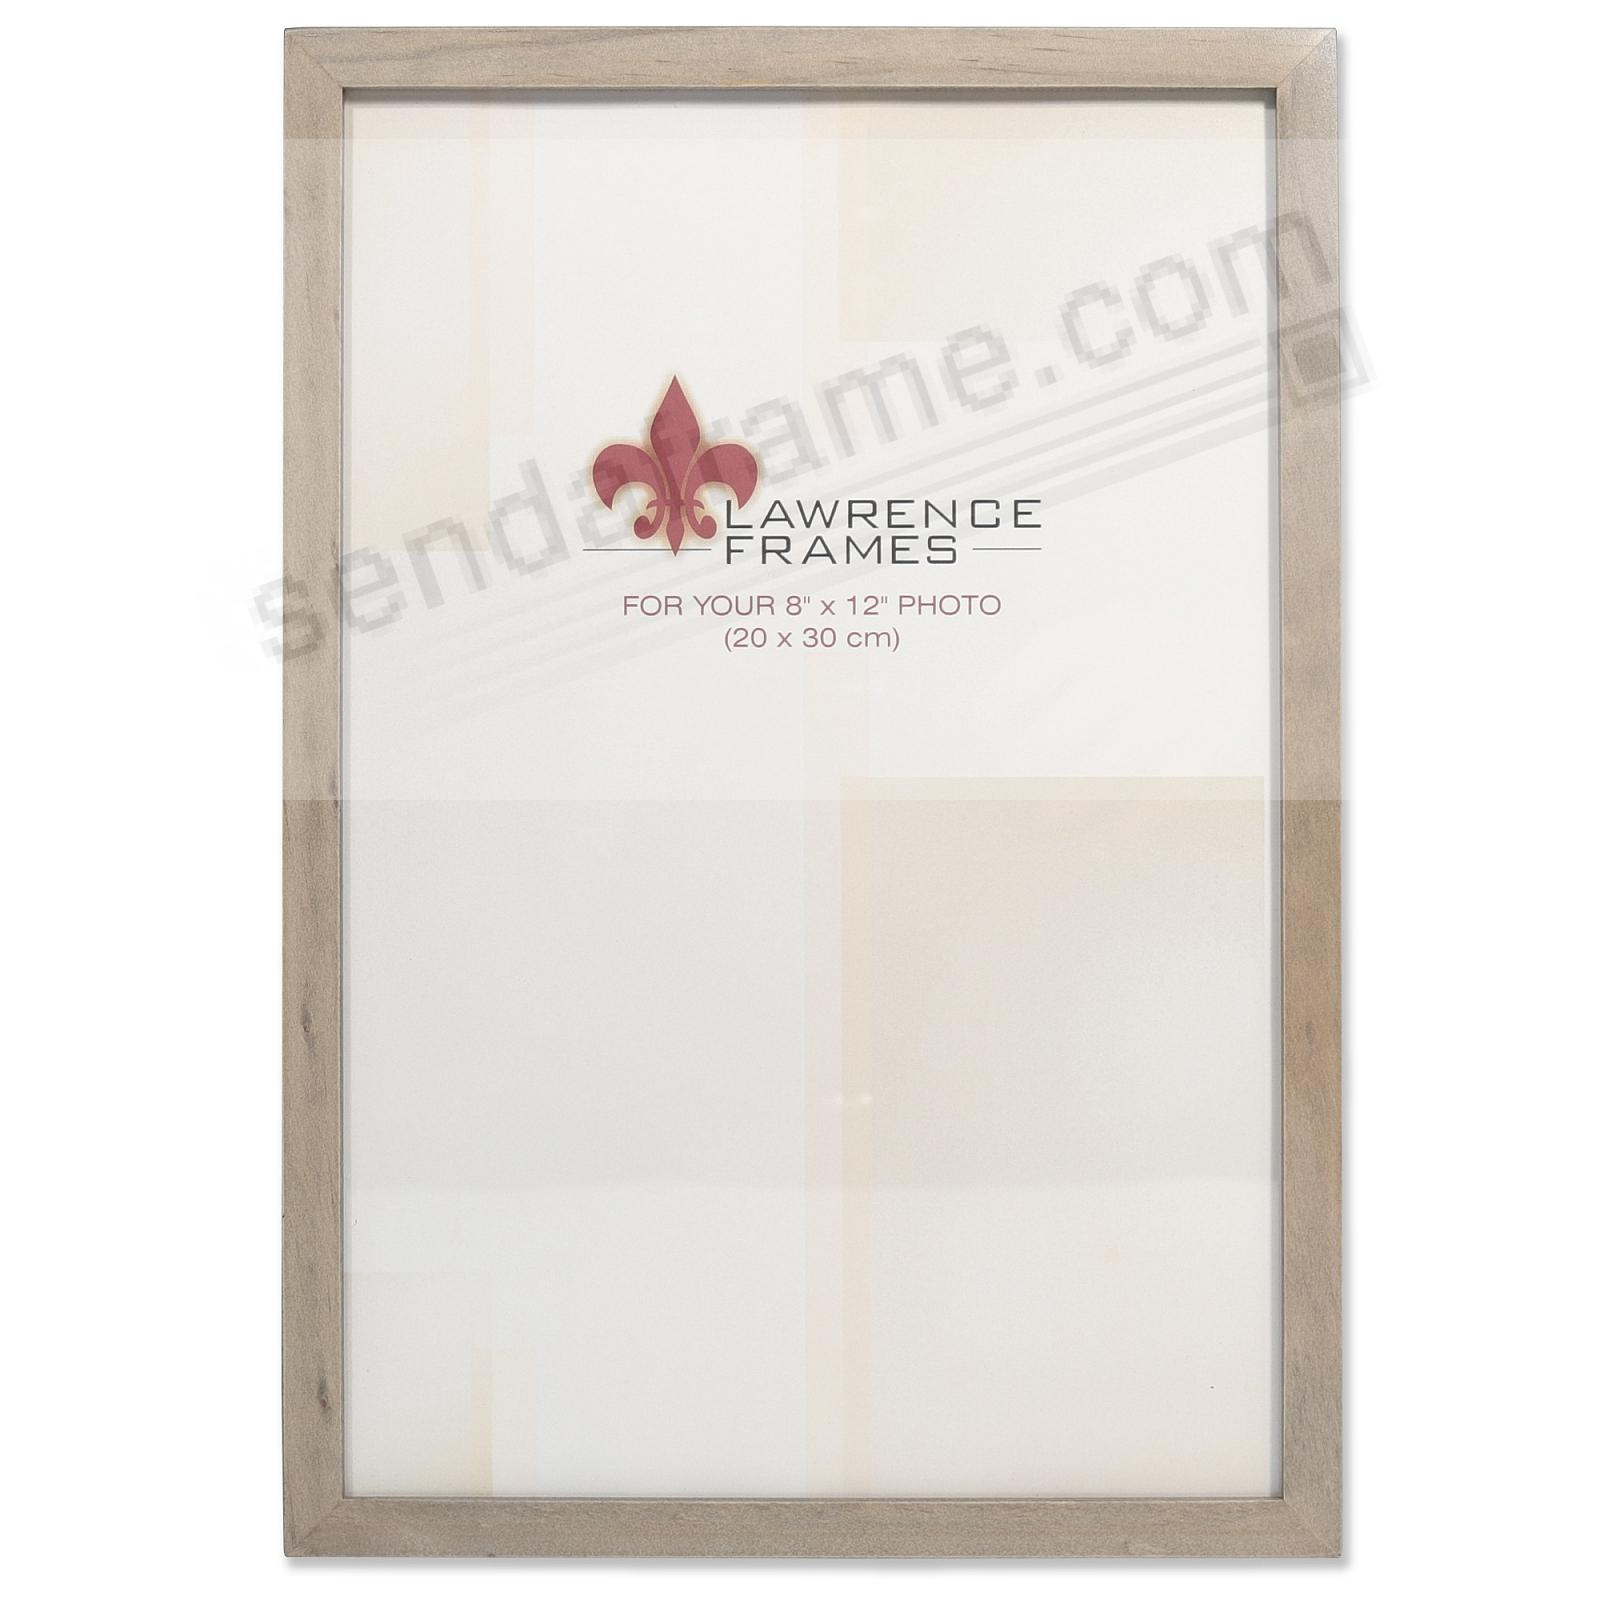 SQUARE CORNER Gray Stain 8x12 frame by Lawrence Frames®